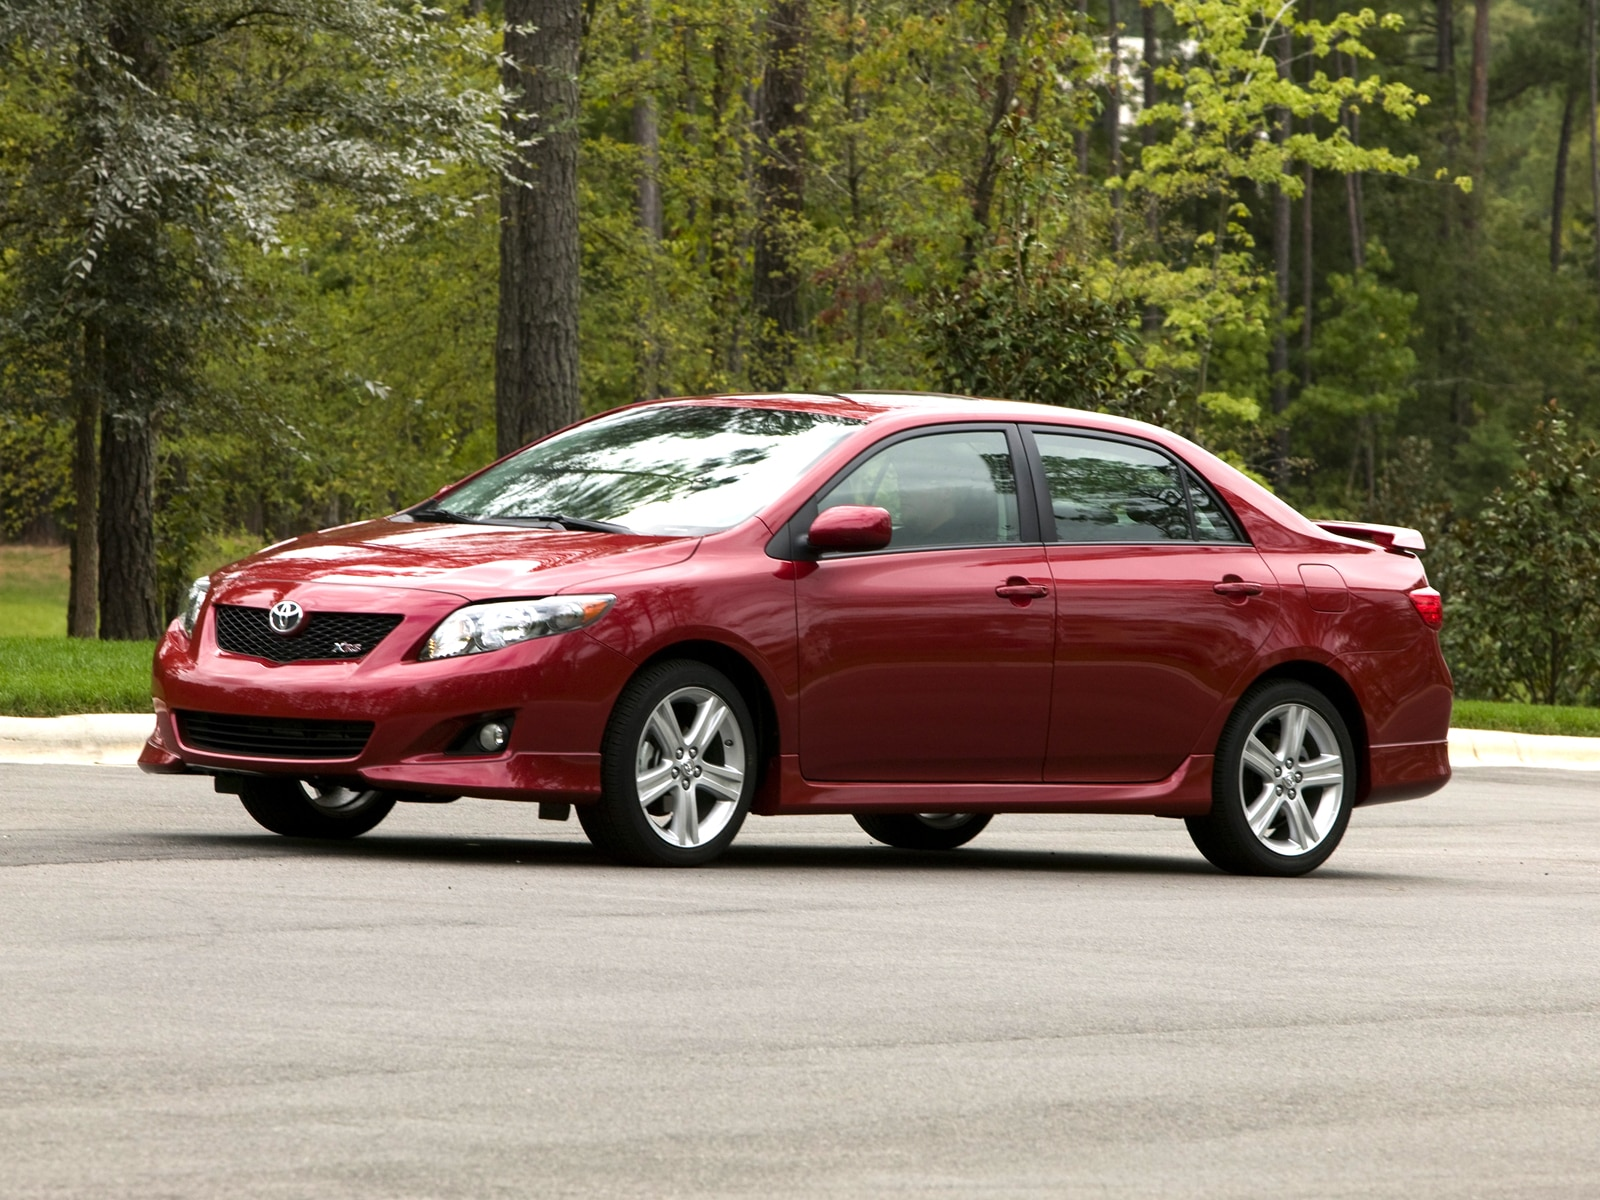 0911 03 Z 2009 Toyota Corolla XRS Front Three Quarter View